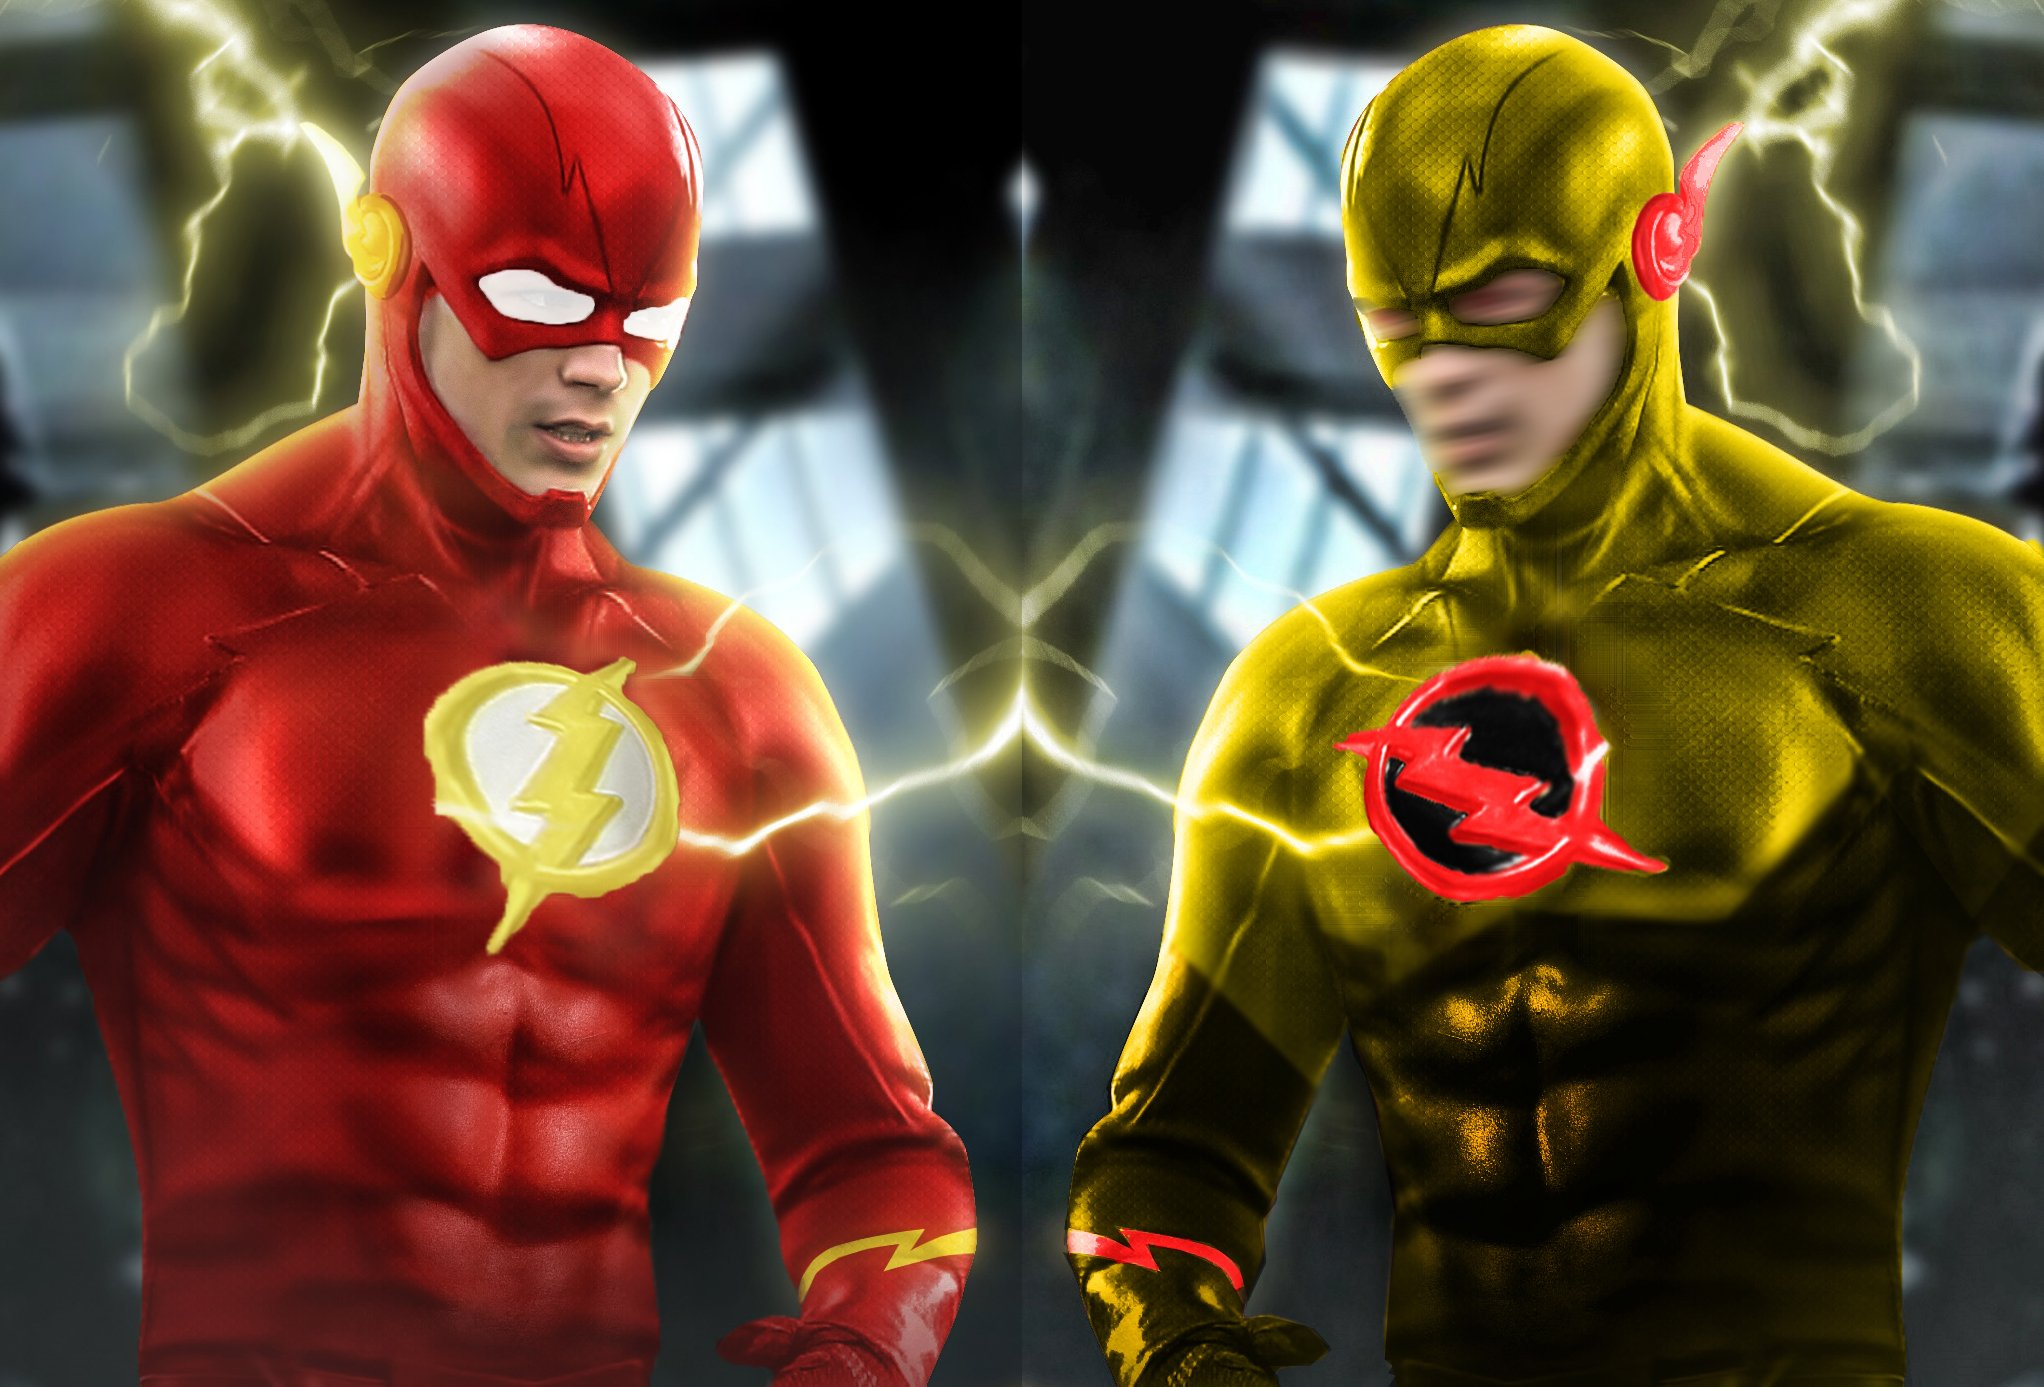 superhero costume changes  flash  reverse flash  by cthebeast123 2044x1387